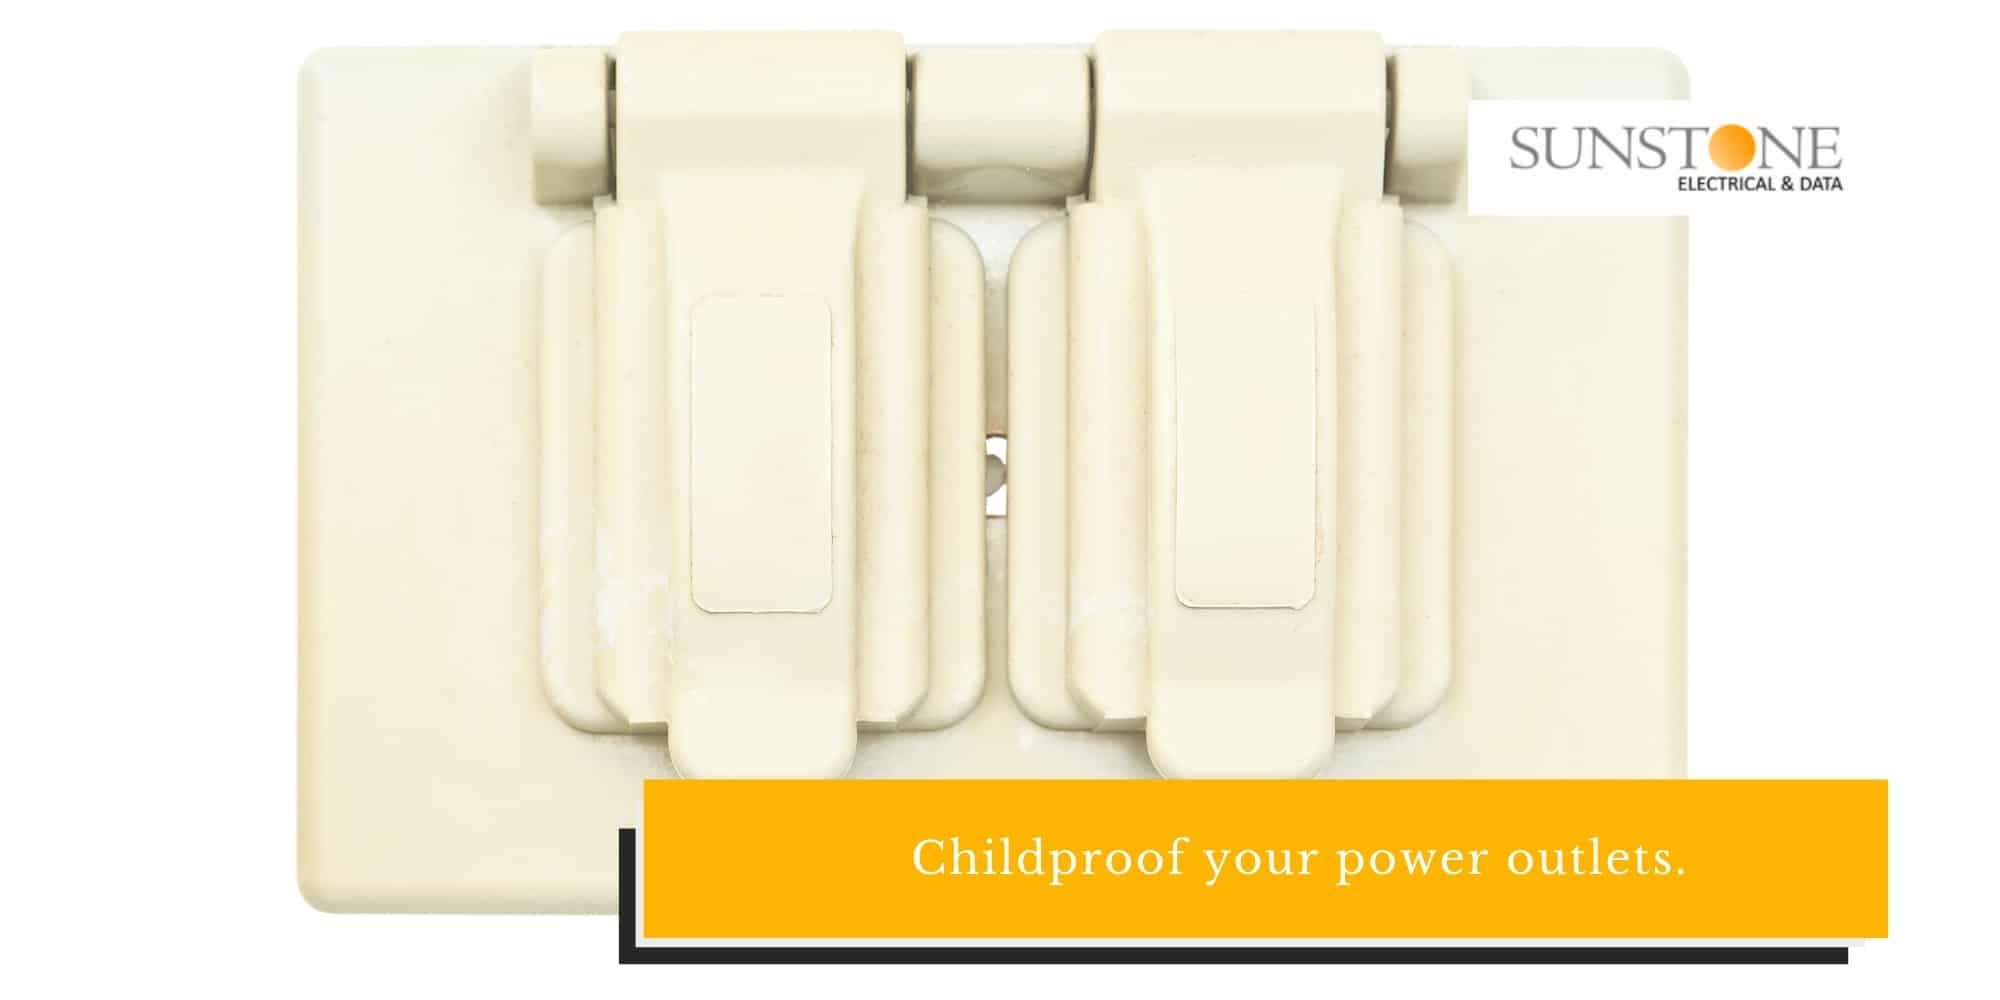 Childproof your power outlets.